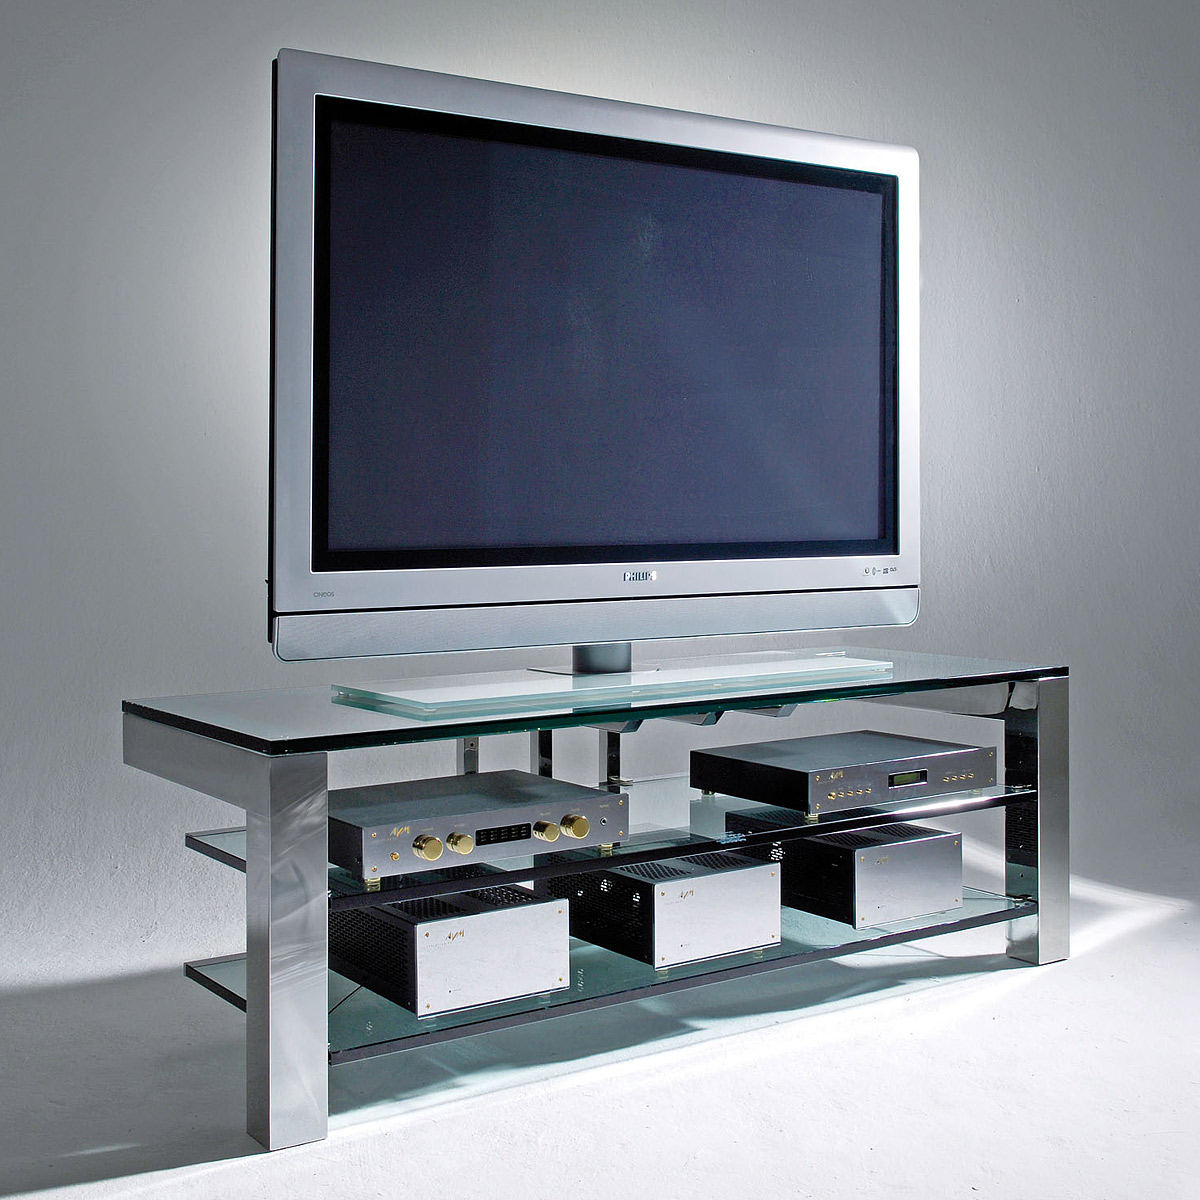 schroers archive tv m bel und hifi m bel guide. Black Bedroom Furniture Sets. Home Design Ideas